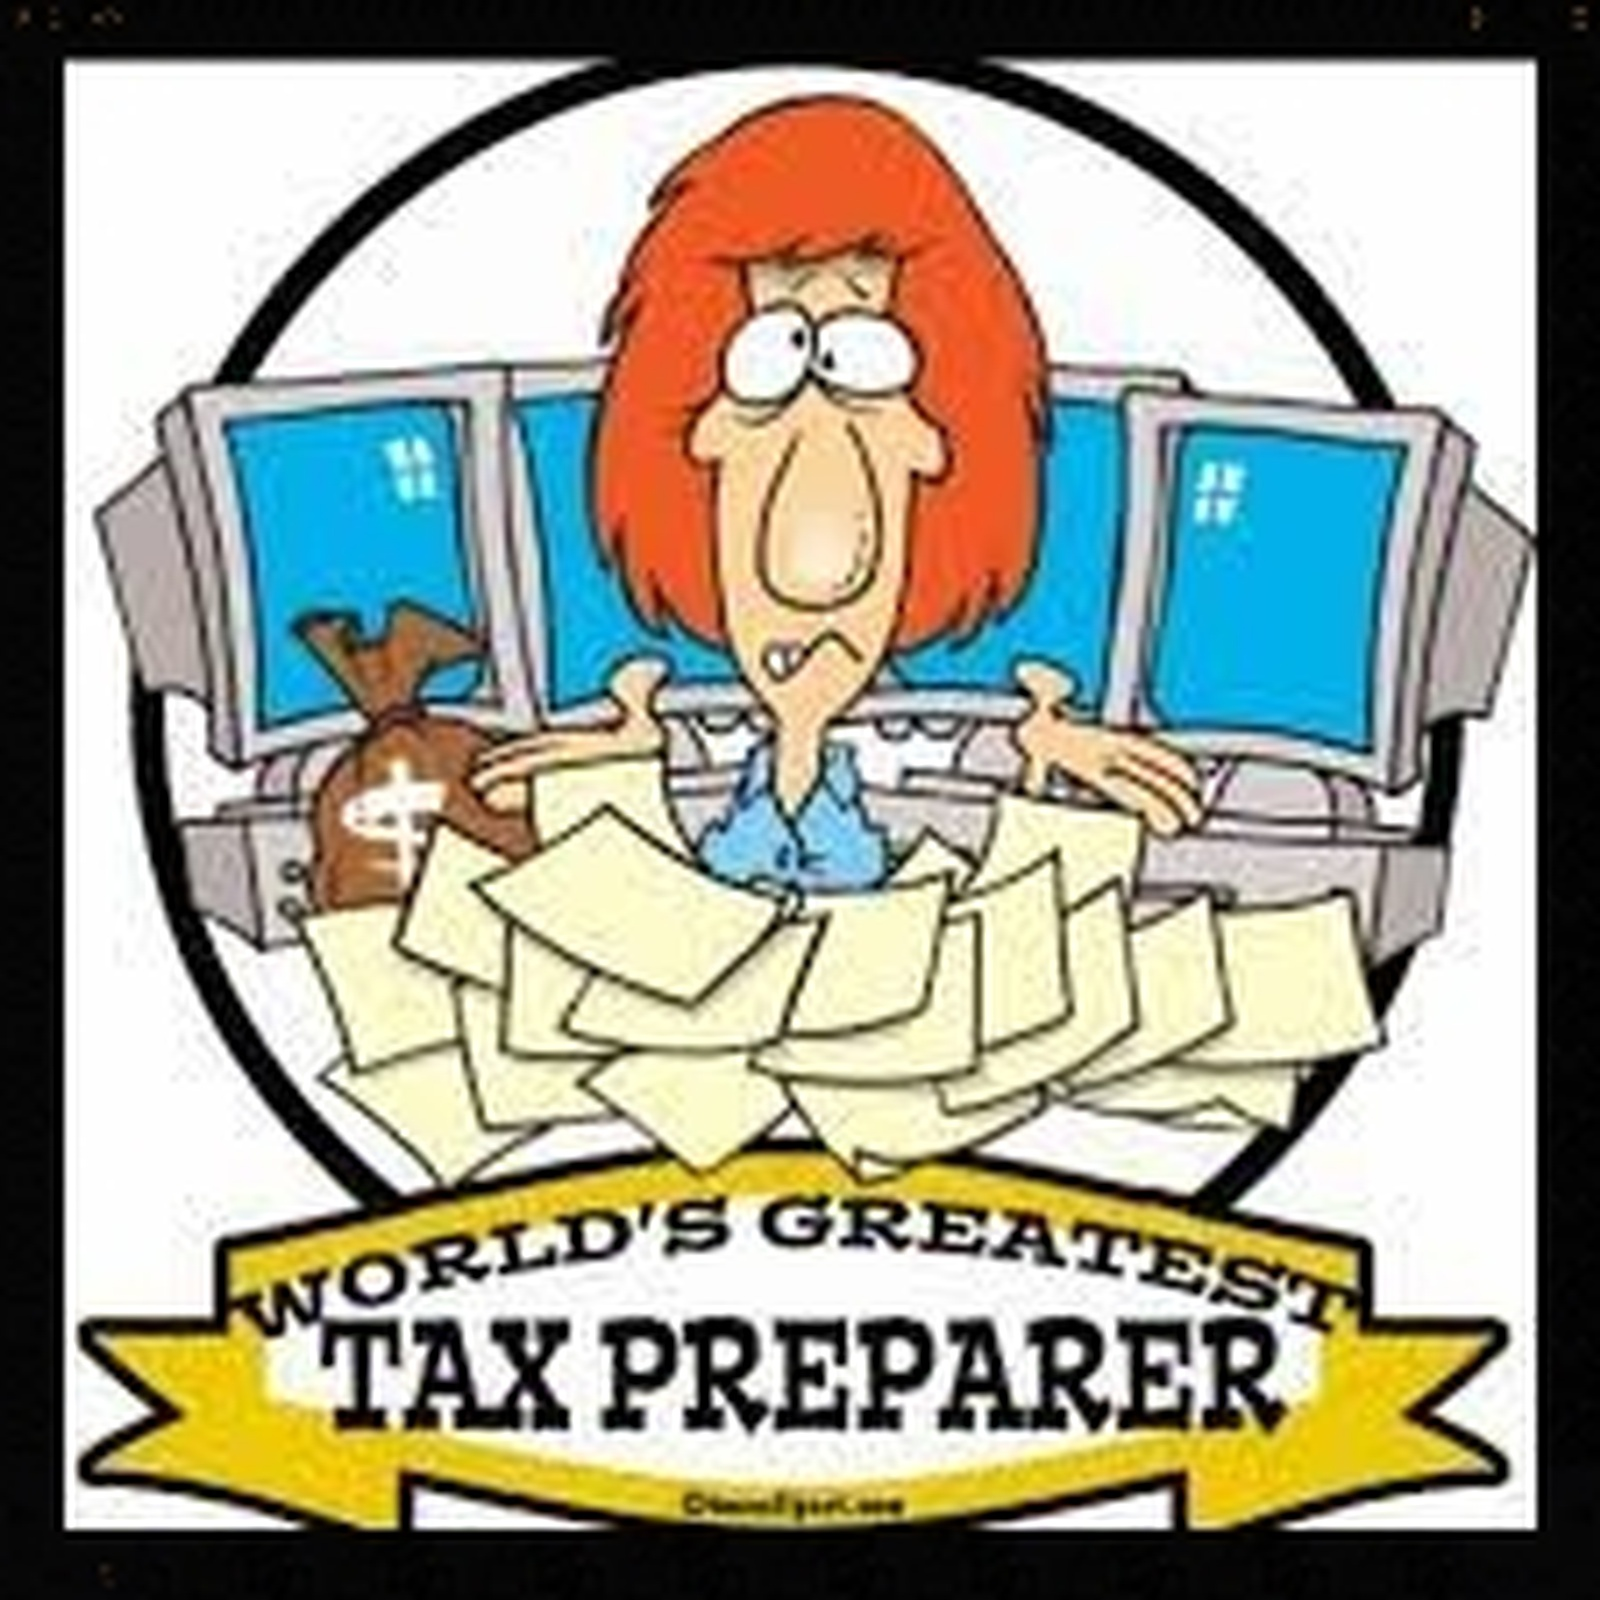 Corey & Associates Words Best Tax Preparer